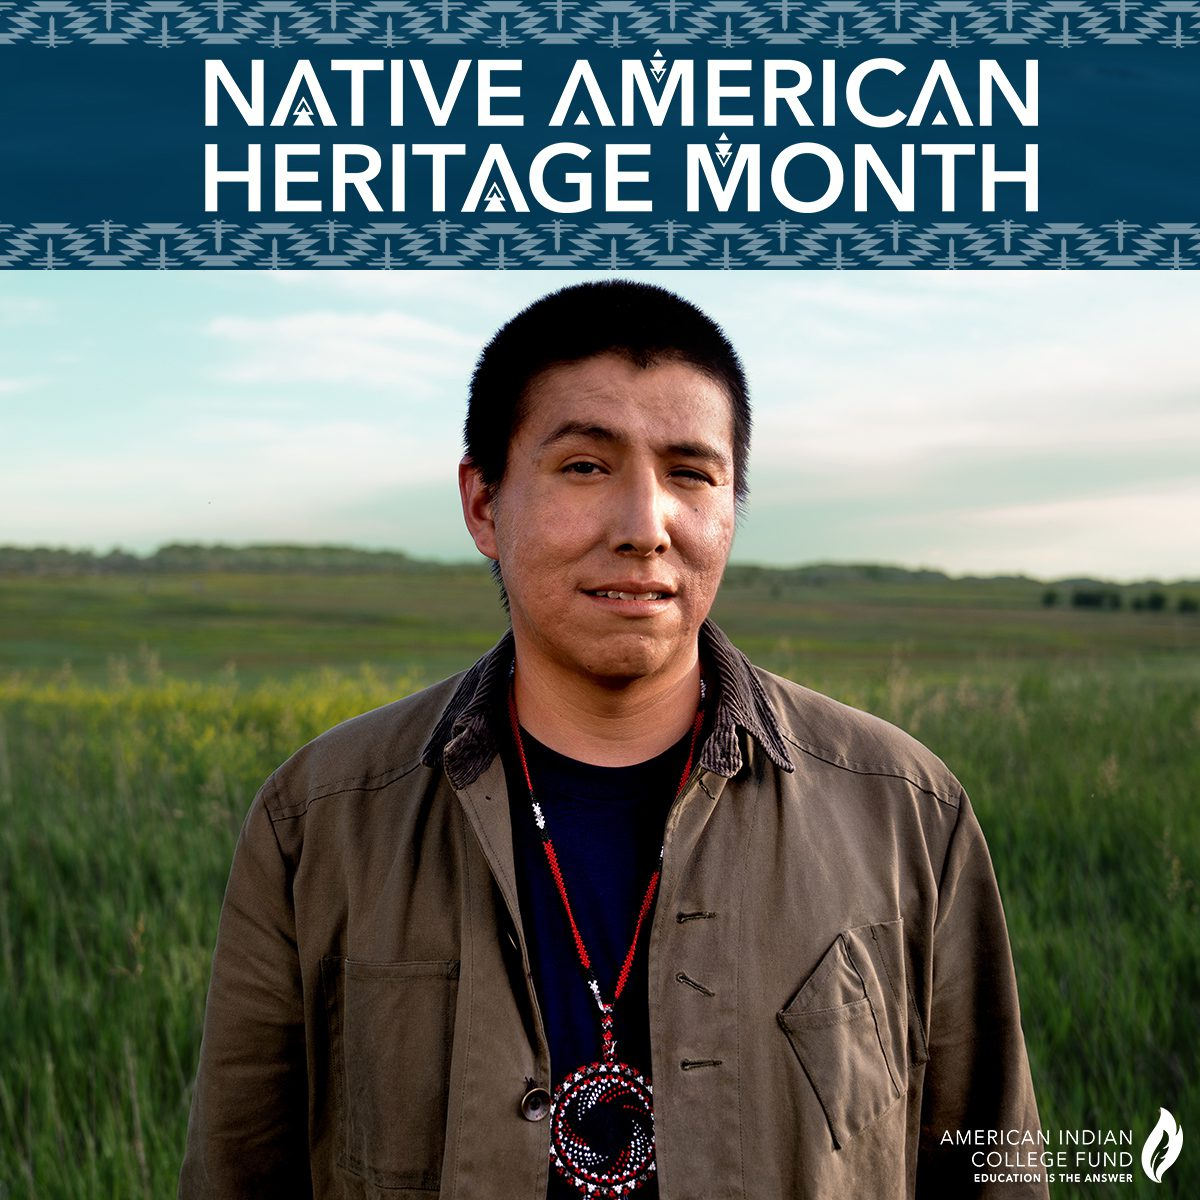 Native American Heritage Month - Share on Instagram 6